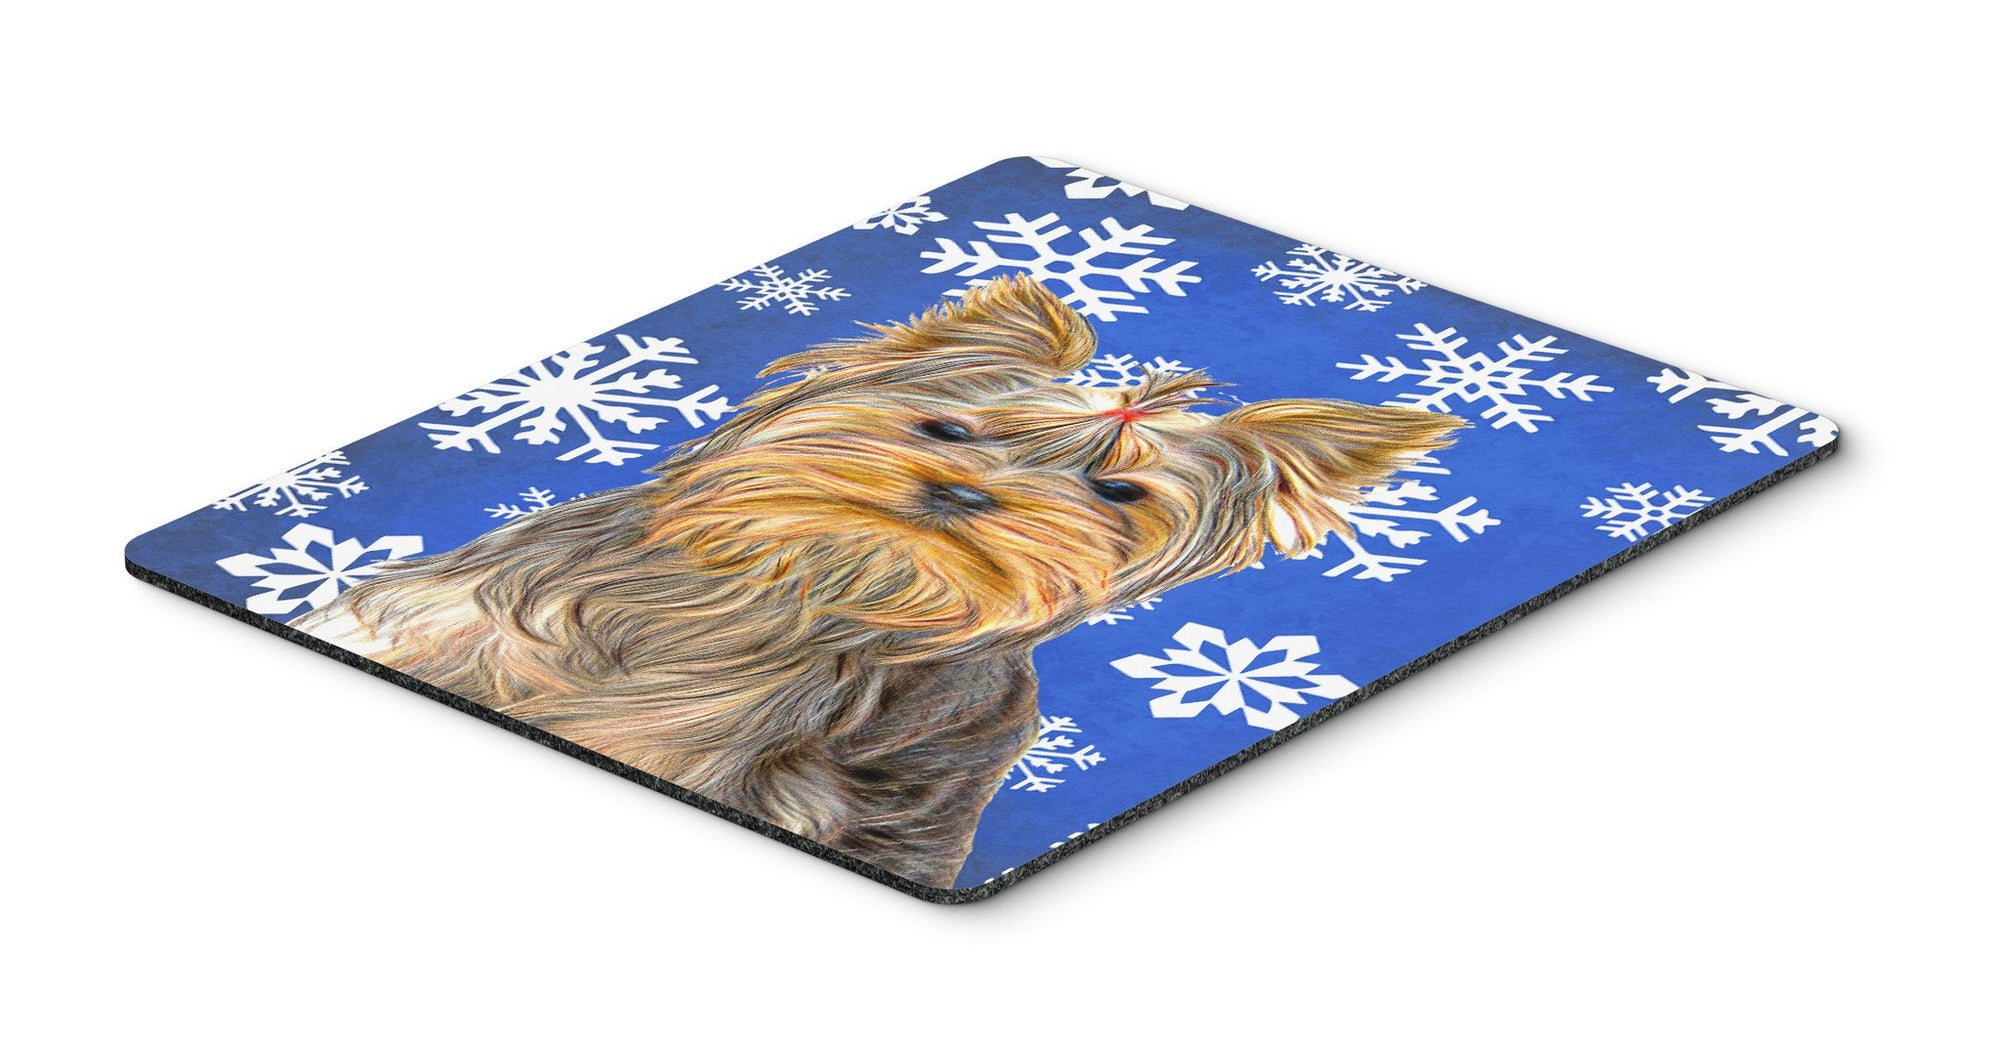 Buy this Winter Snowflakes Holiday Yorkie / Yorkshire Terrier Mouse Pad, Hot Pad or Trivet KJ1177MP